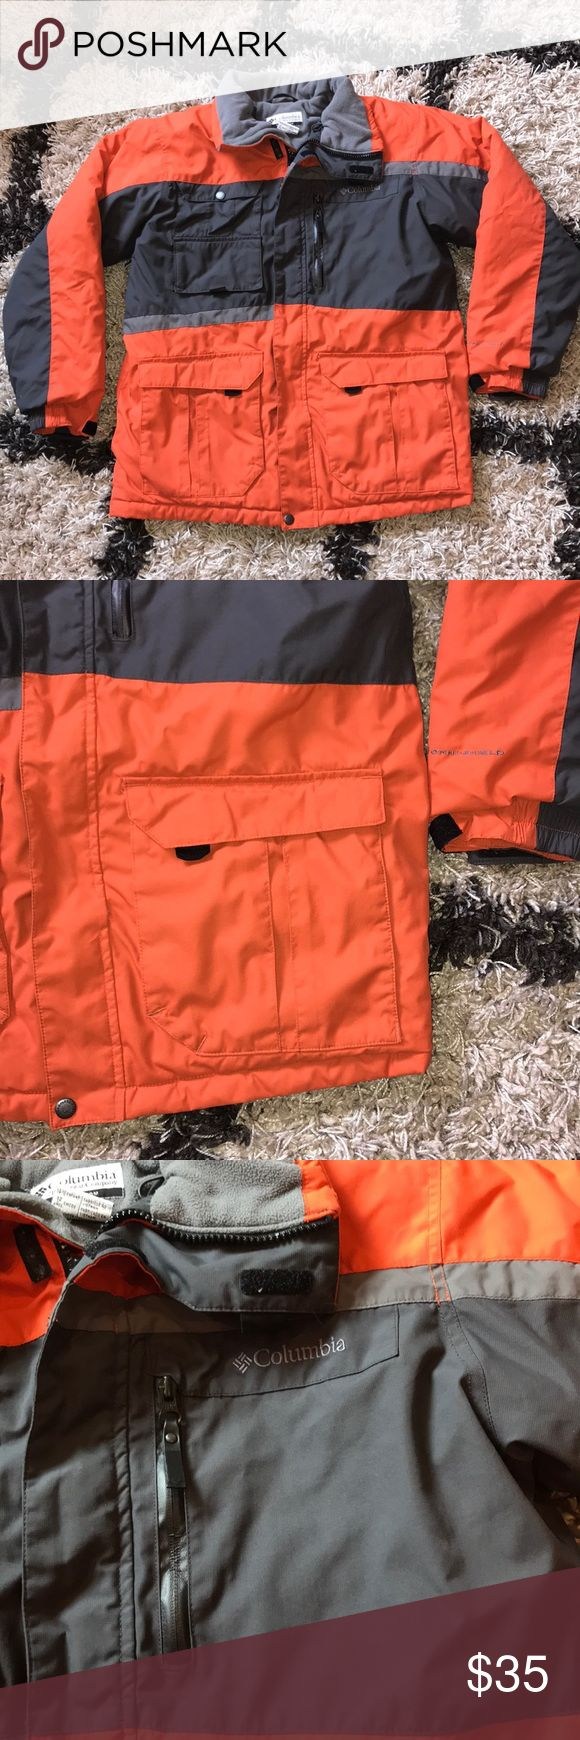 Boys Columbia Water Resistant Coat Size 14/16 boys. Water resistant exterior. Headphone ready interior pocket. Mesh interior pocket. 3 exterior pockets and one flap pocket for ID or ski pass. Orange and gray. Columbia Jackets & Coats